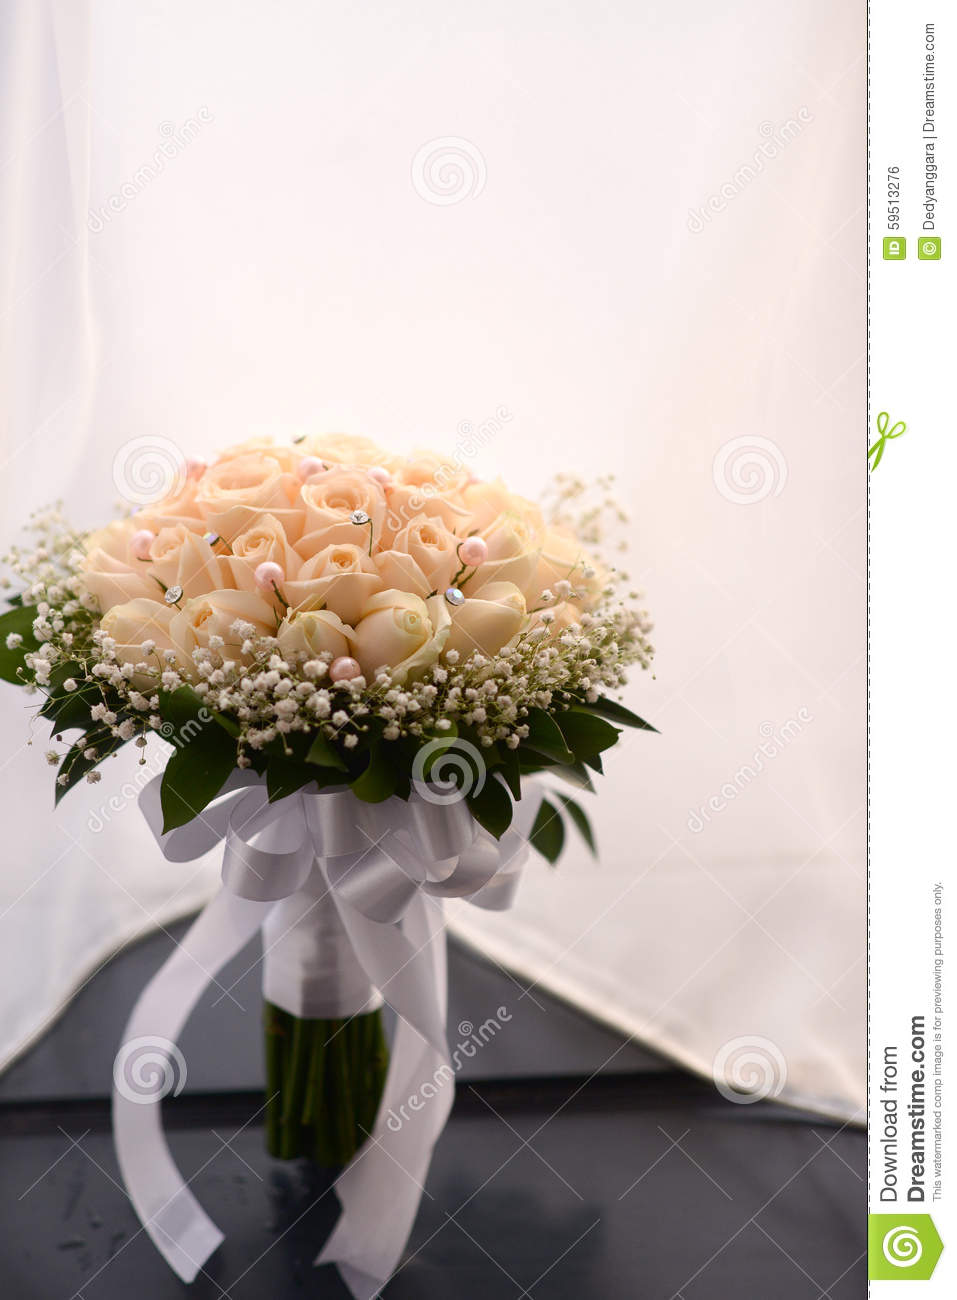 This hand flower bouquet for the bride stock photo image of close download comp izmirmasajfo